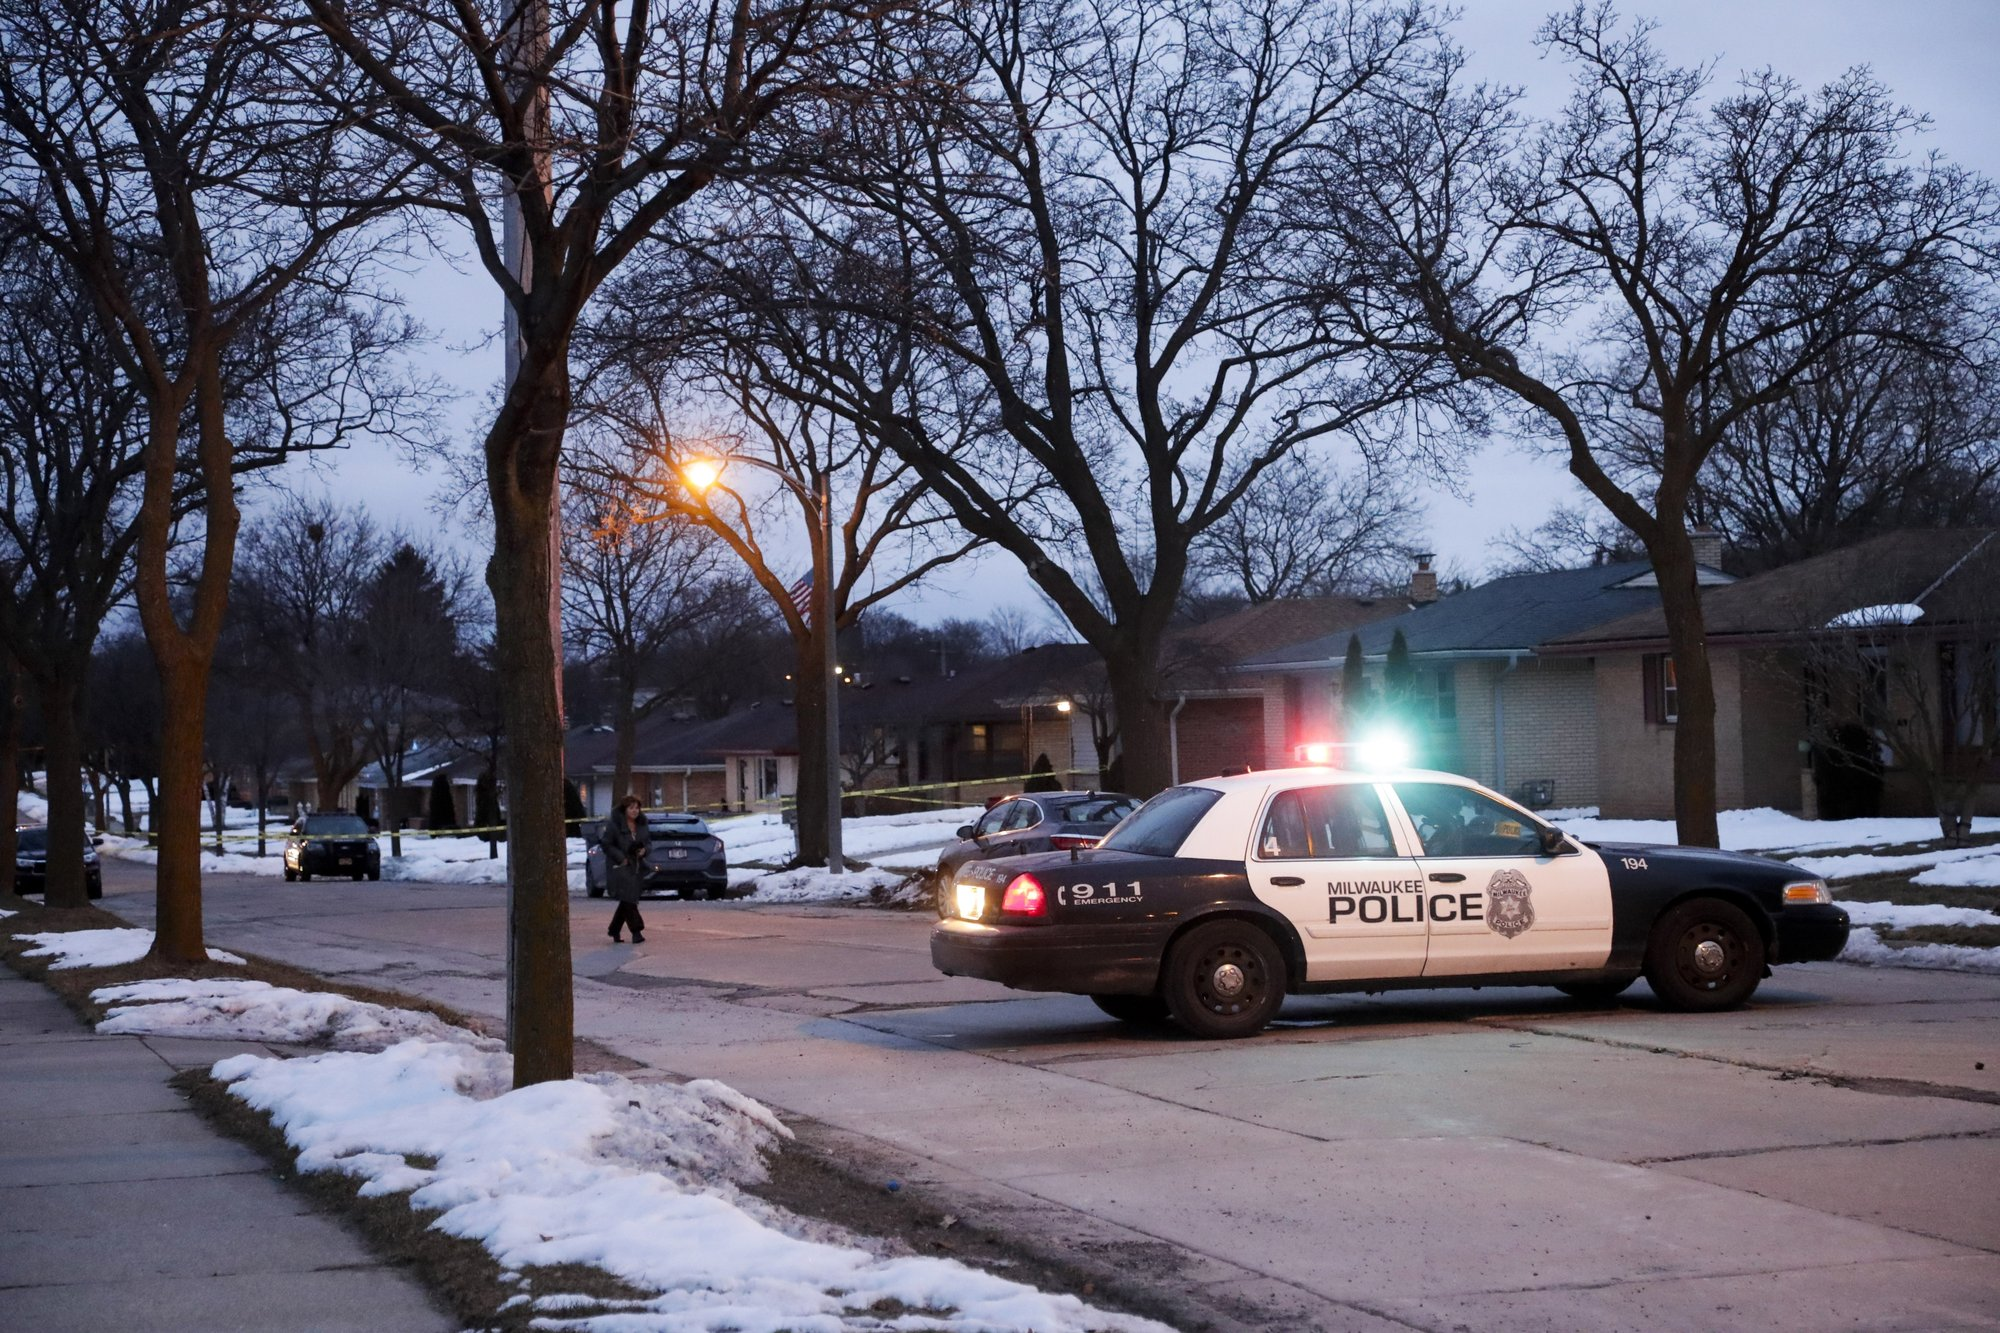 Police are seen outside of a house